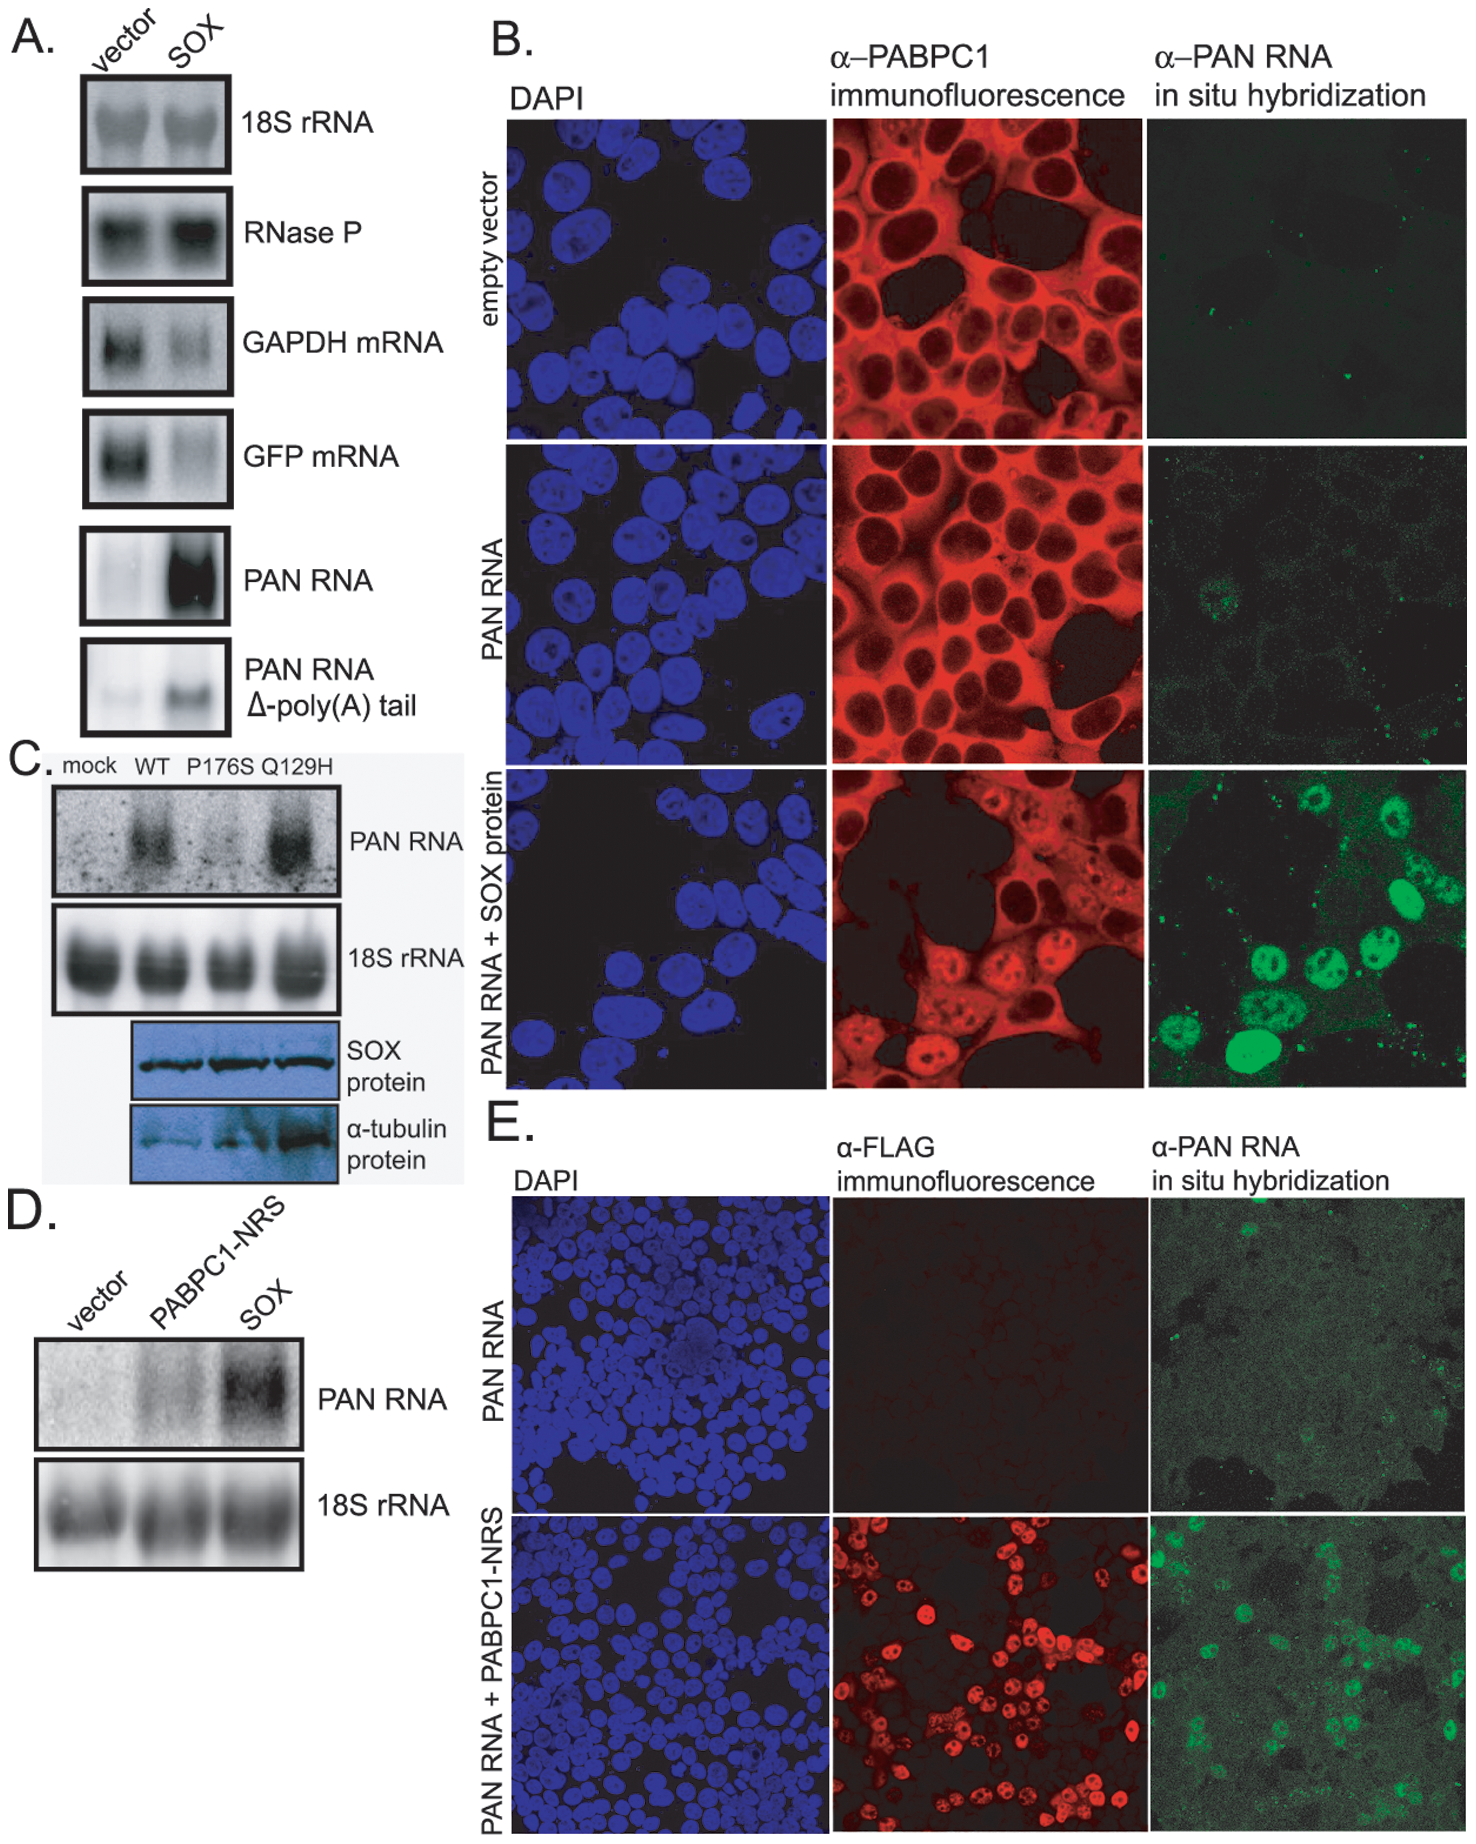 SOX stimulates PAN RNA expression in transient transfection assays.